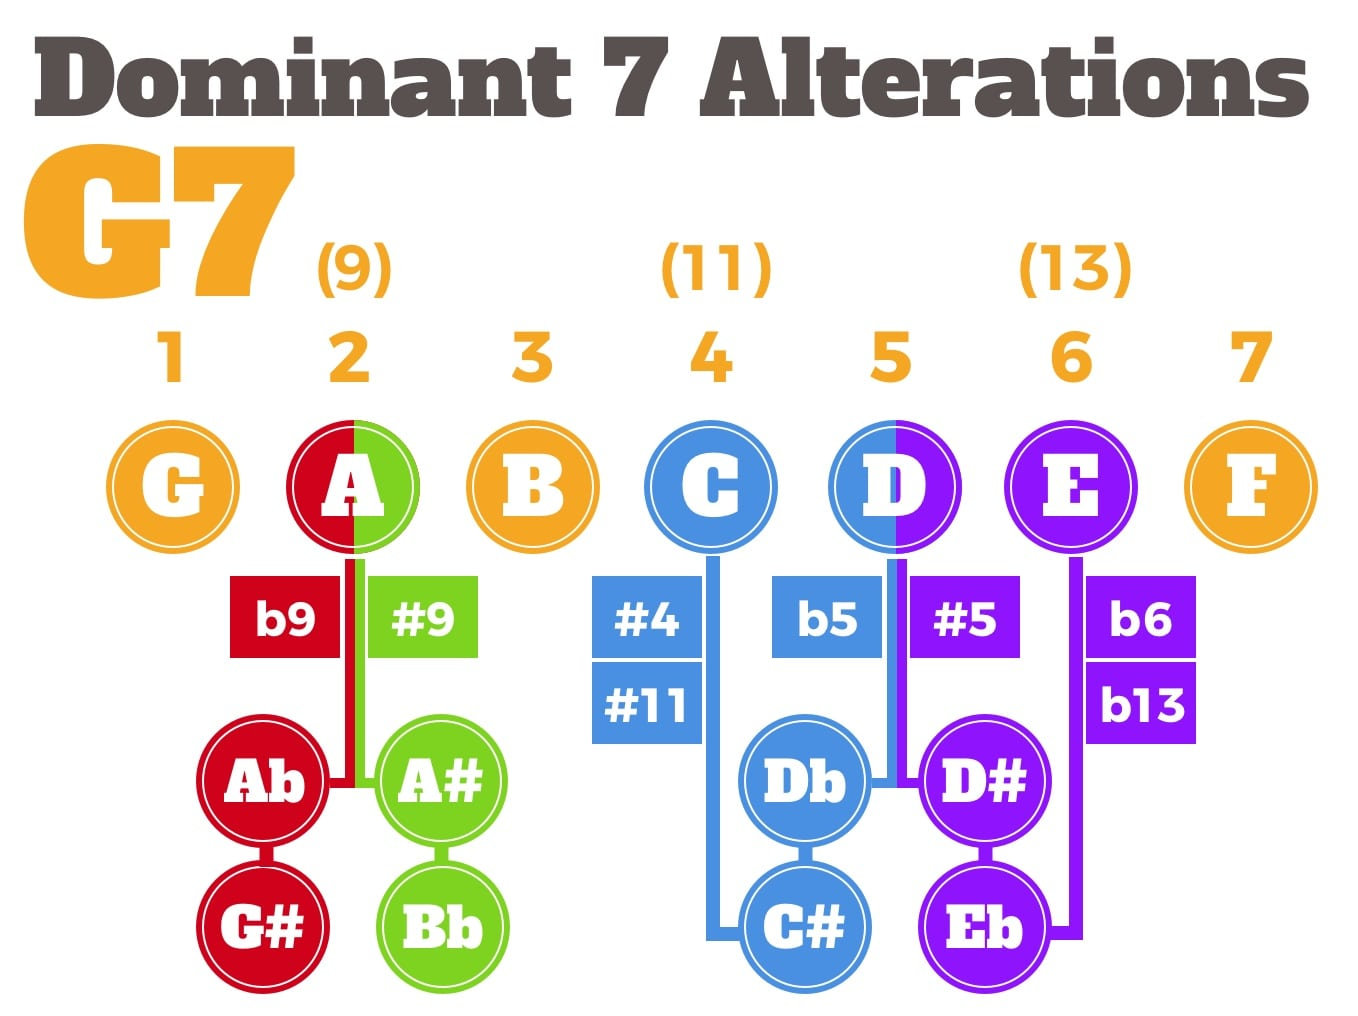 Dominant 7 alterations guide